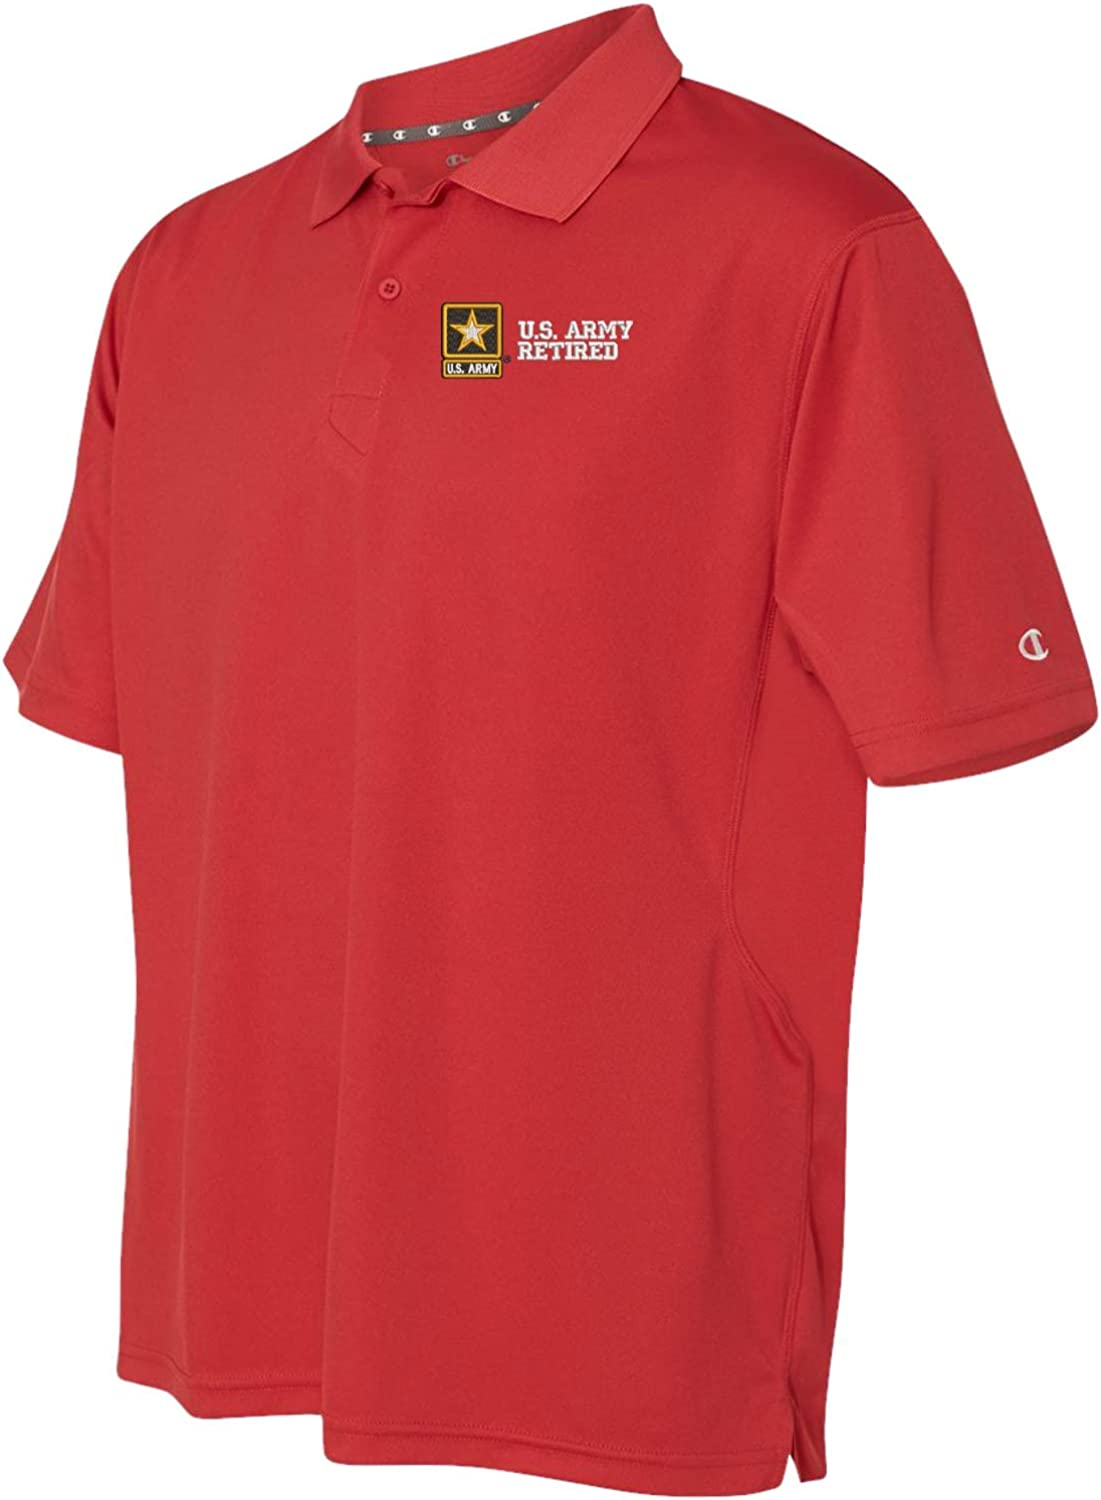 Army Retired Flag Mens Short Sleeve Polo Shirt Classic-Fit Blouse Sport Tee